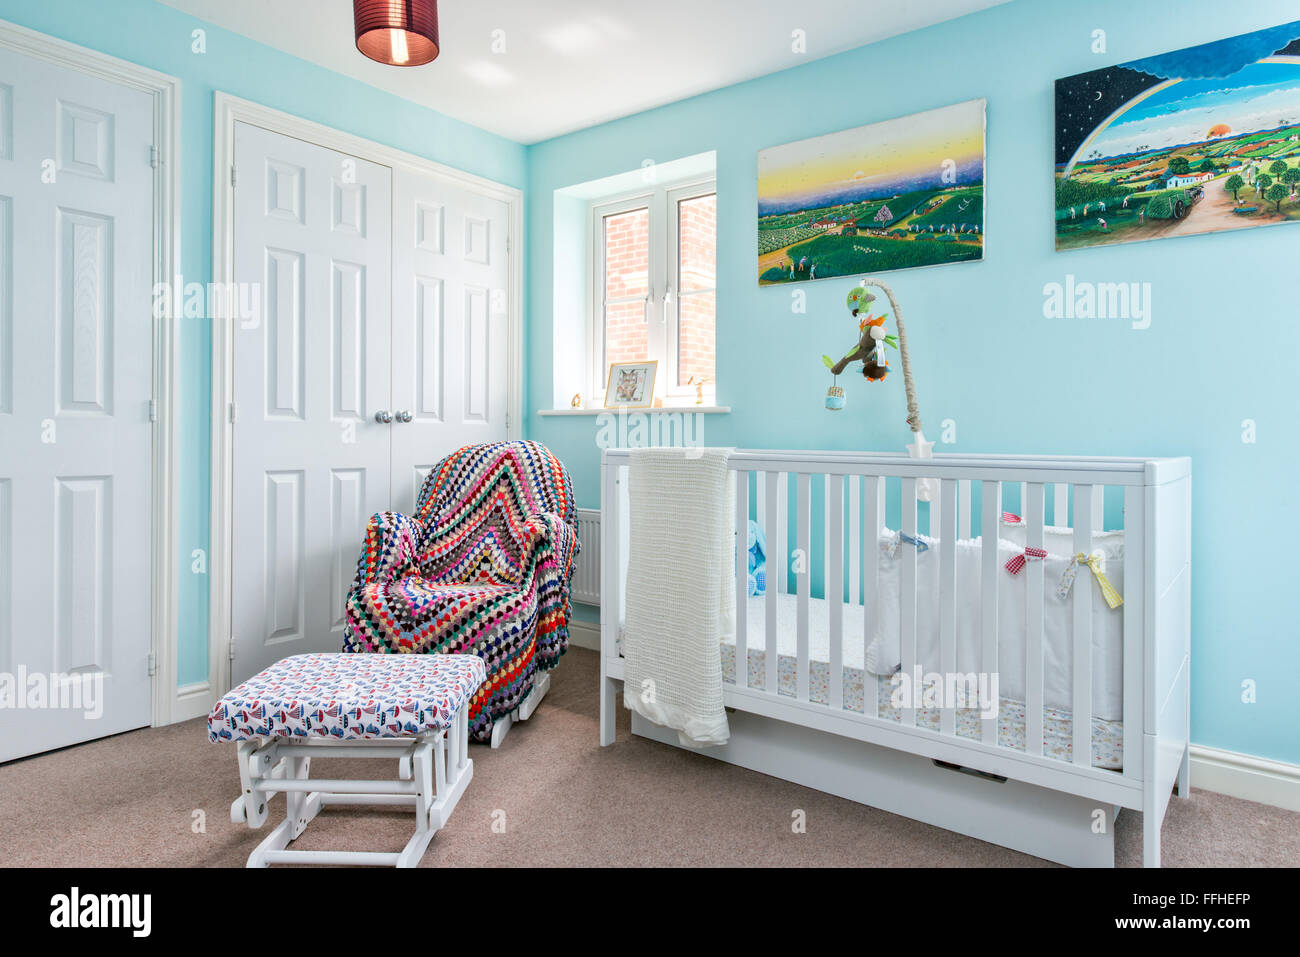 The nursery of a young child decorated in blue & white with a cot and nursing chair covered with a throw - Stock Image